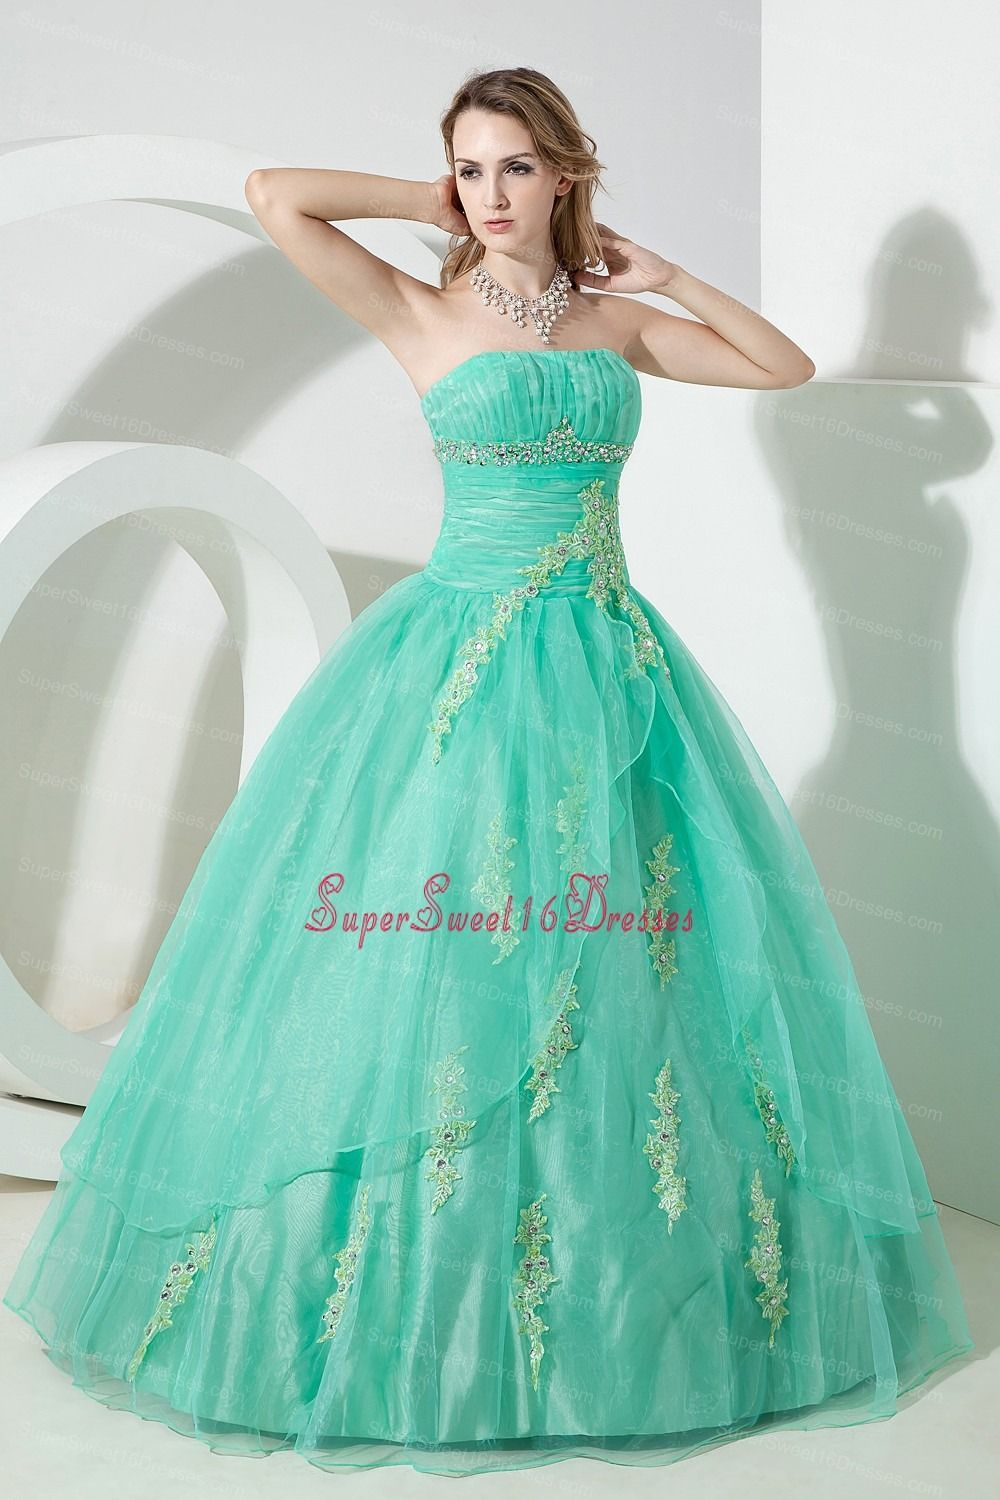 Sweet turquoise 16 dresses fotos